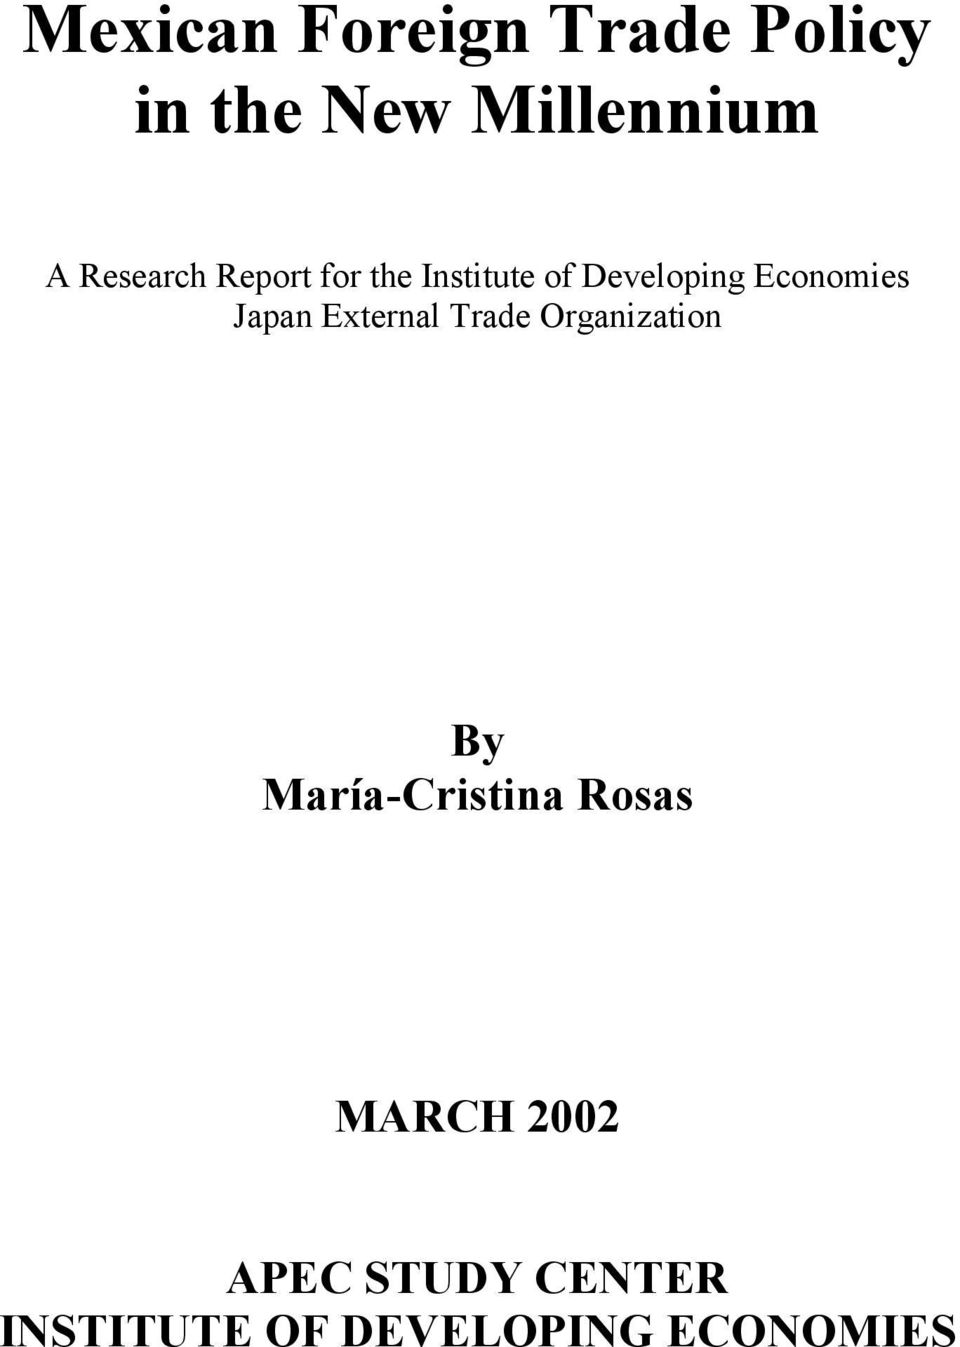 Japan External Trade Organization By María-Cristina Rosas